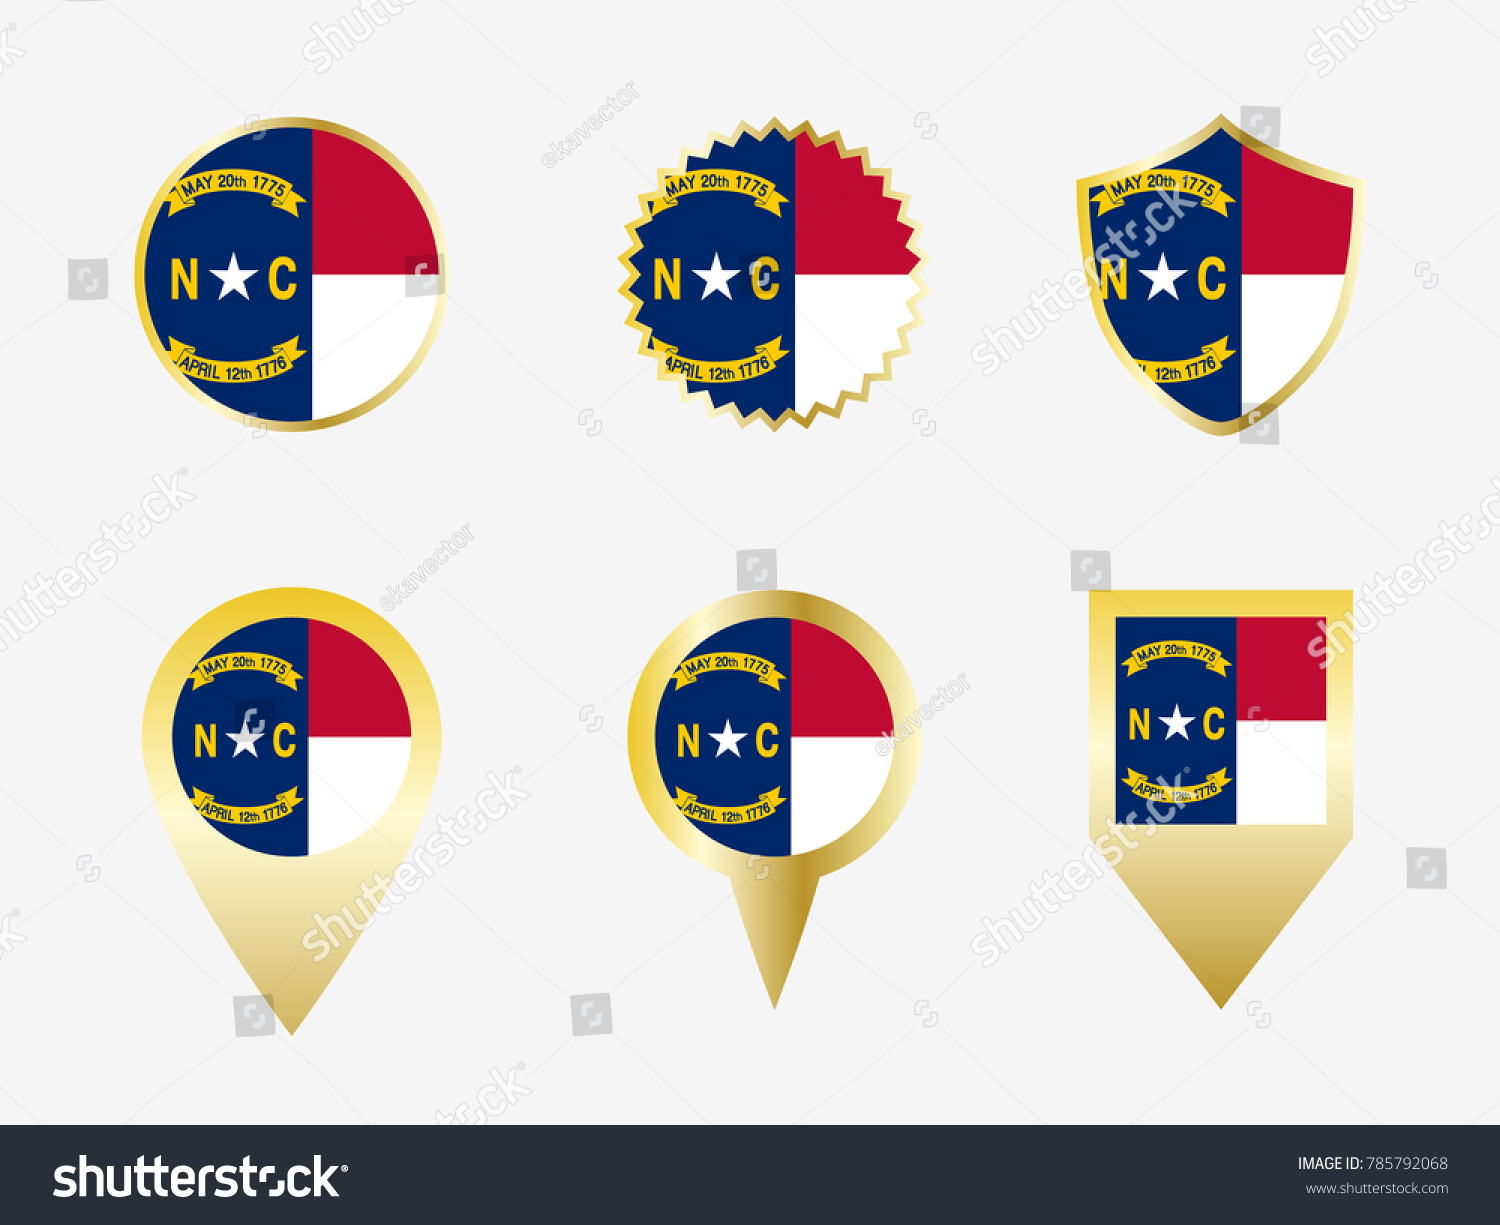 Vector flag set north carolina us stock vector 785792068 vector flag set of north carolina us state buycottarizona